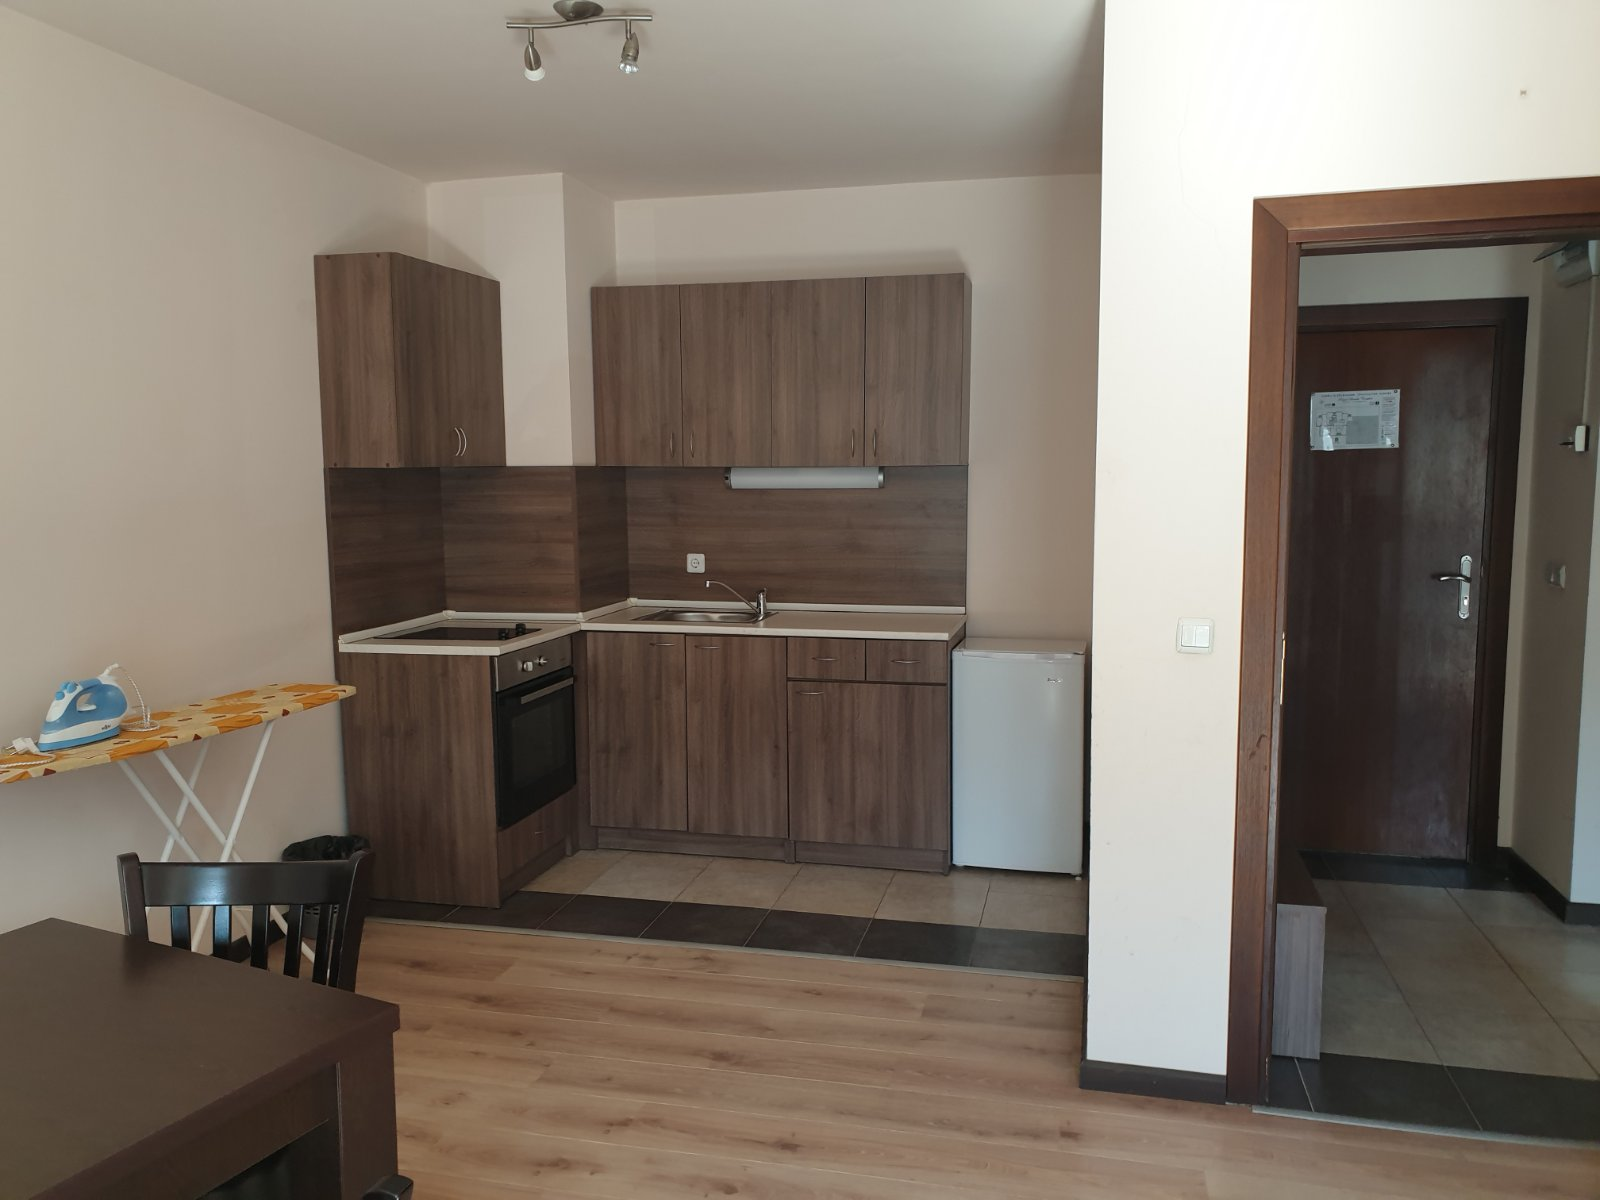 south one bedroom apartment for sale in royal bansko